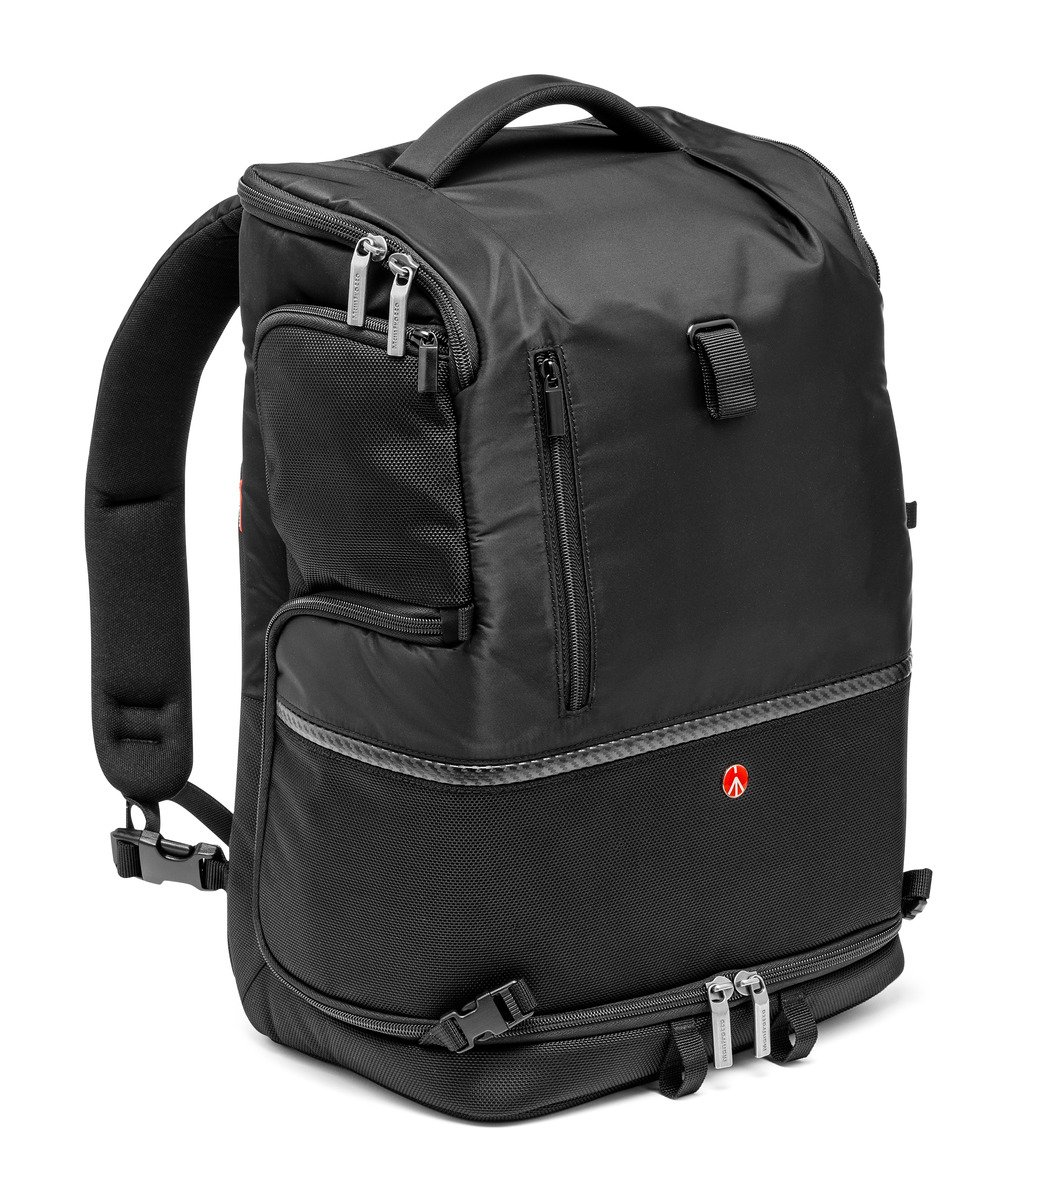 Manfrotto MB MA-BP-TL Advanced Tri Backpack, Large (Black) by Manfrotto